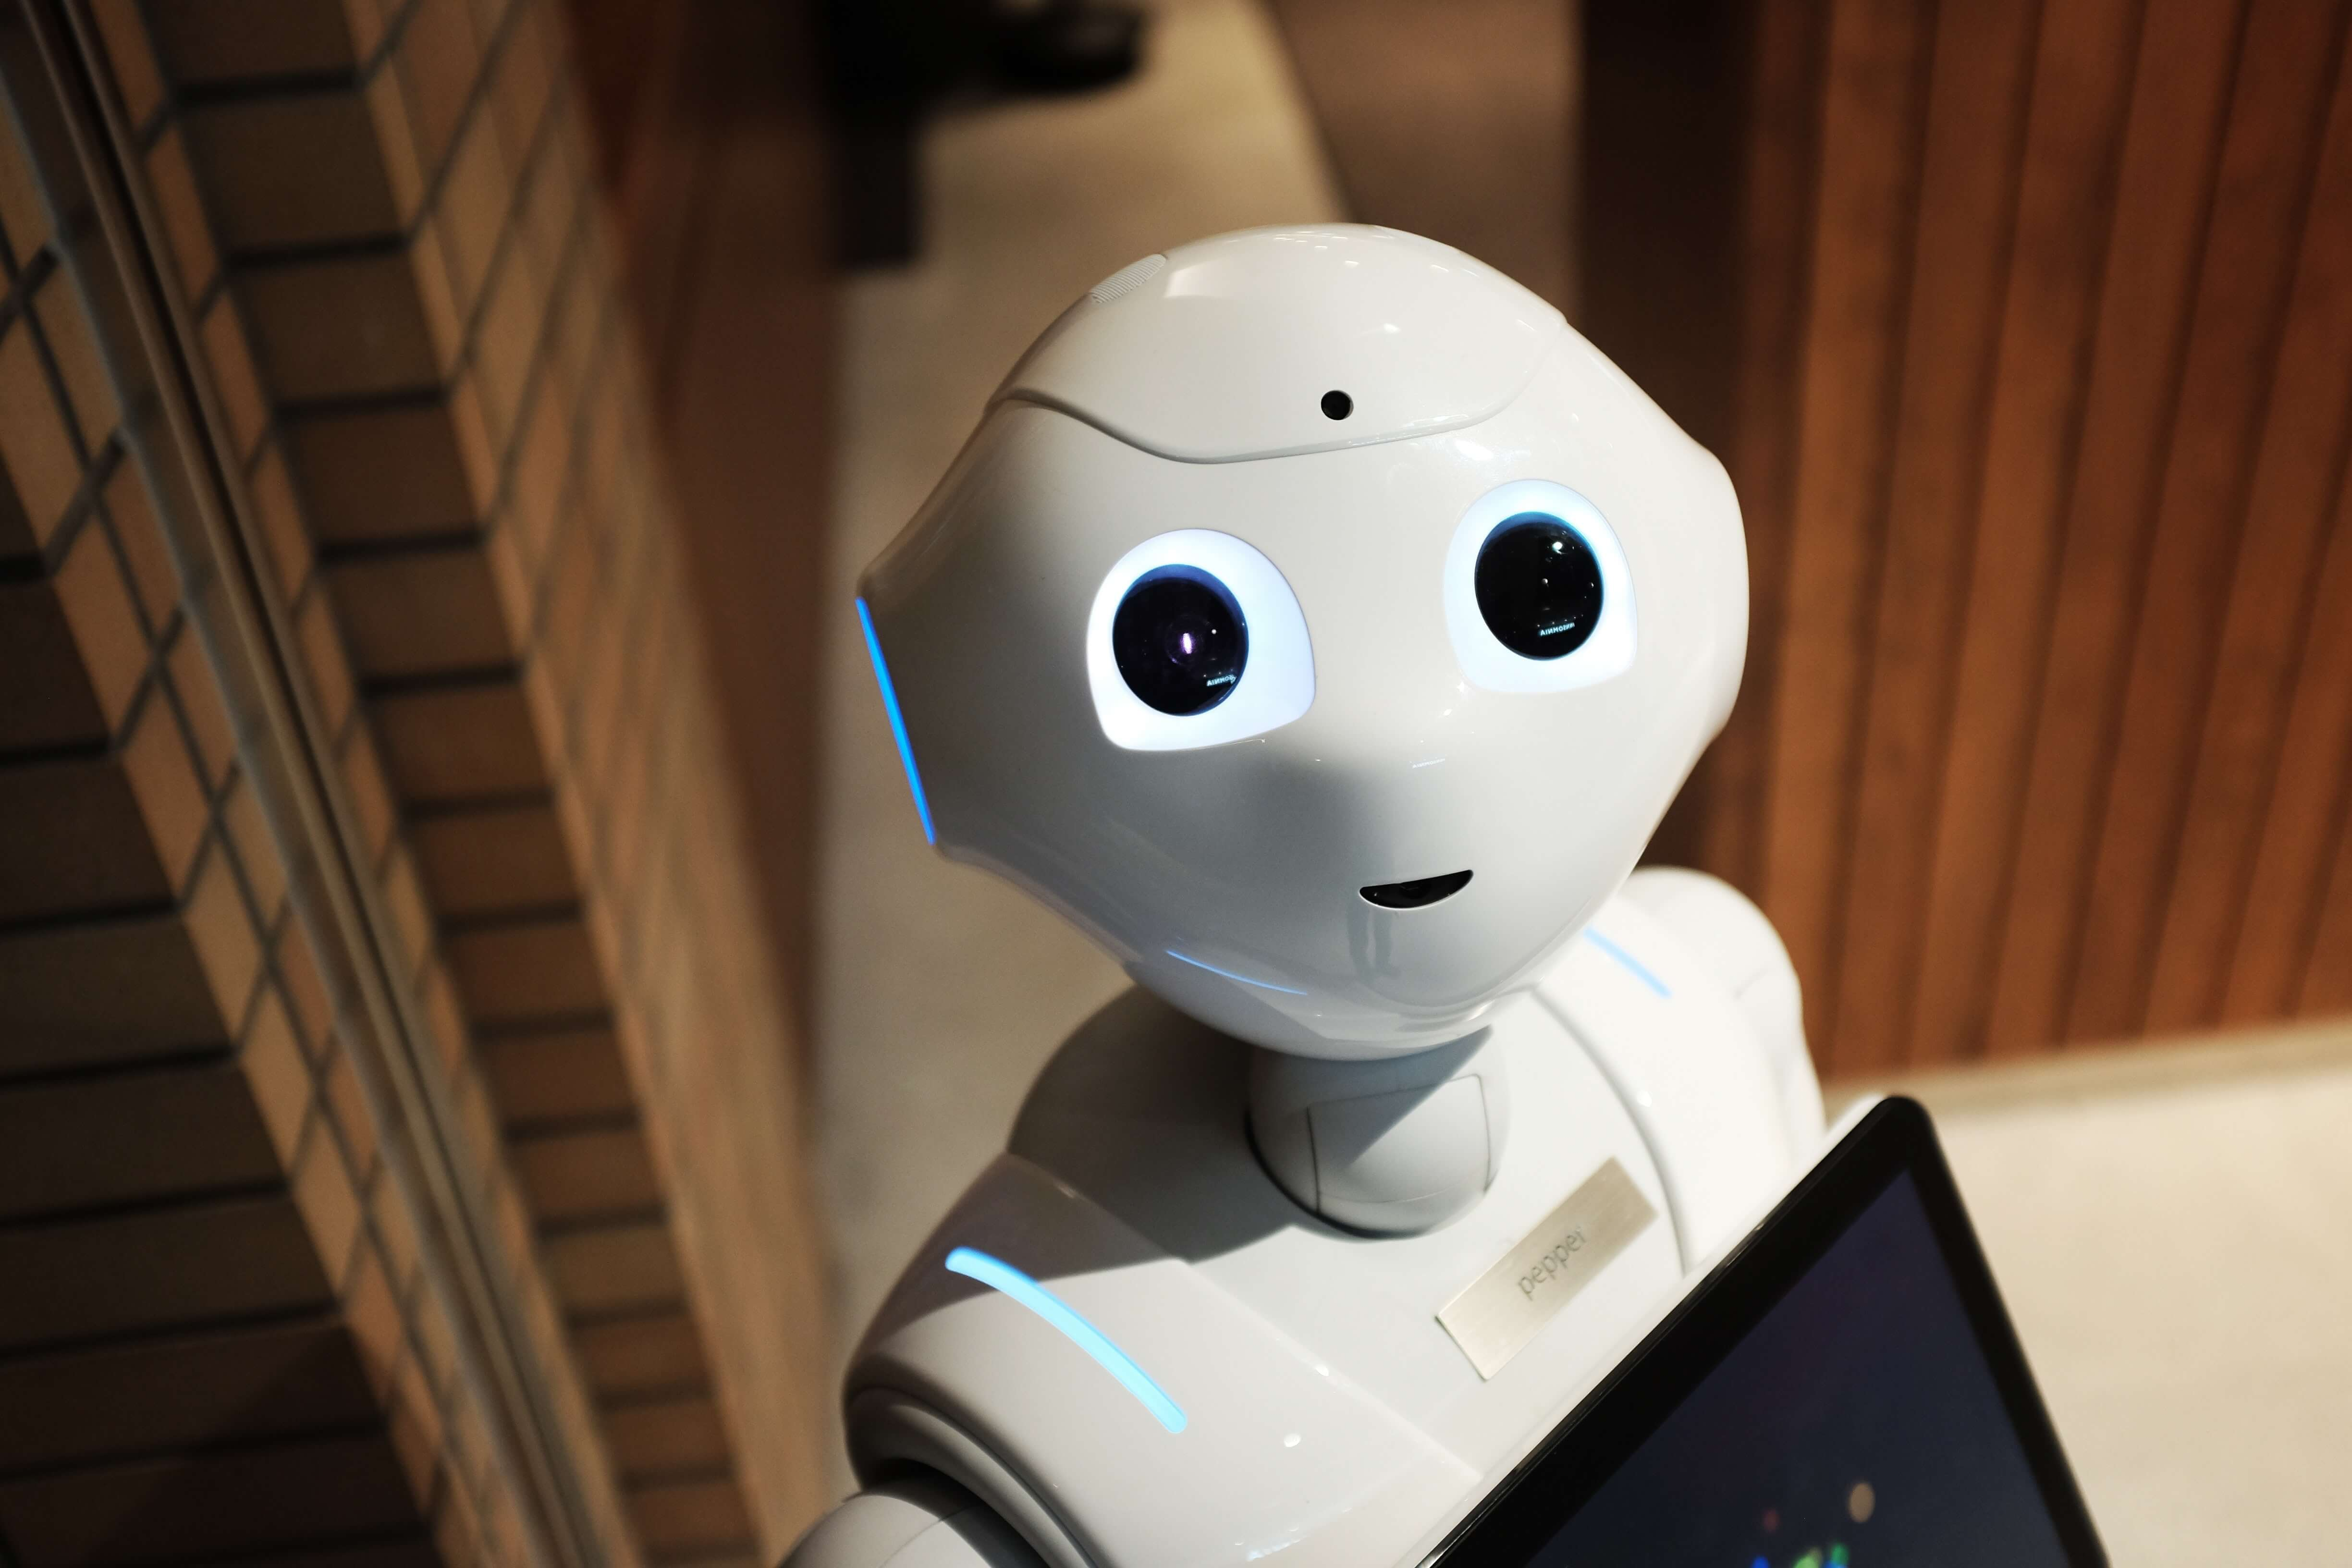 10 Reasons to Let Artificial Intelligence Do Your Work